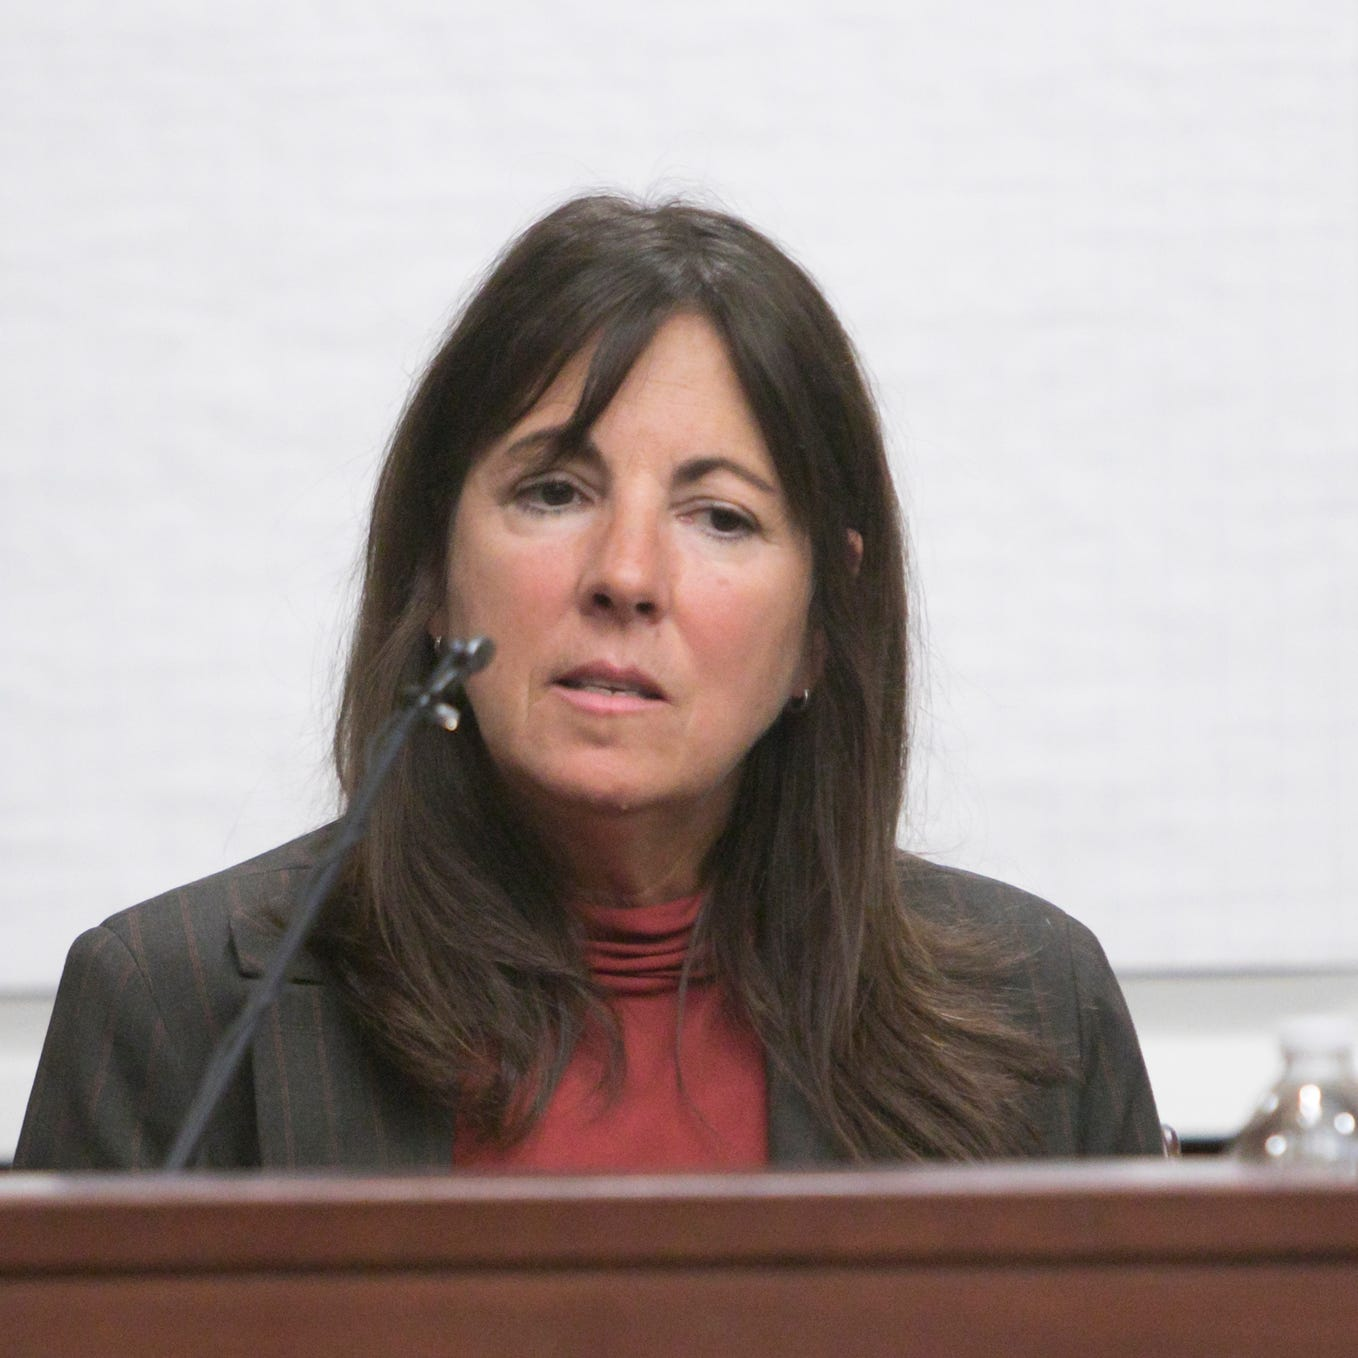 Hune, Theis, Vaupel renew calls for Brennan's resignation after felony charges filed